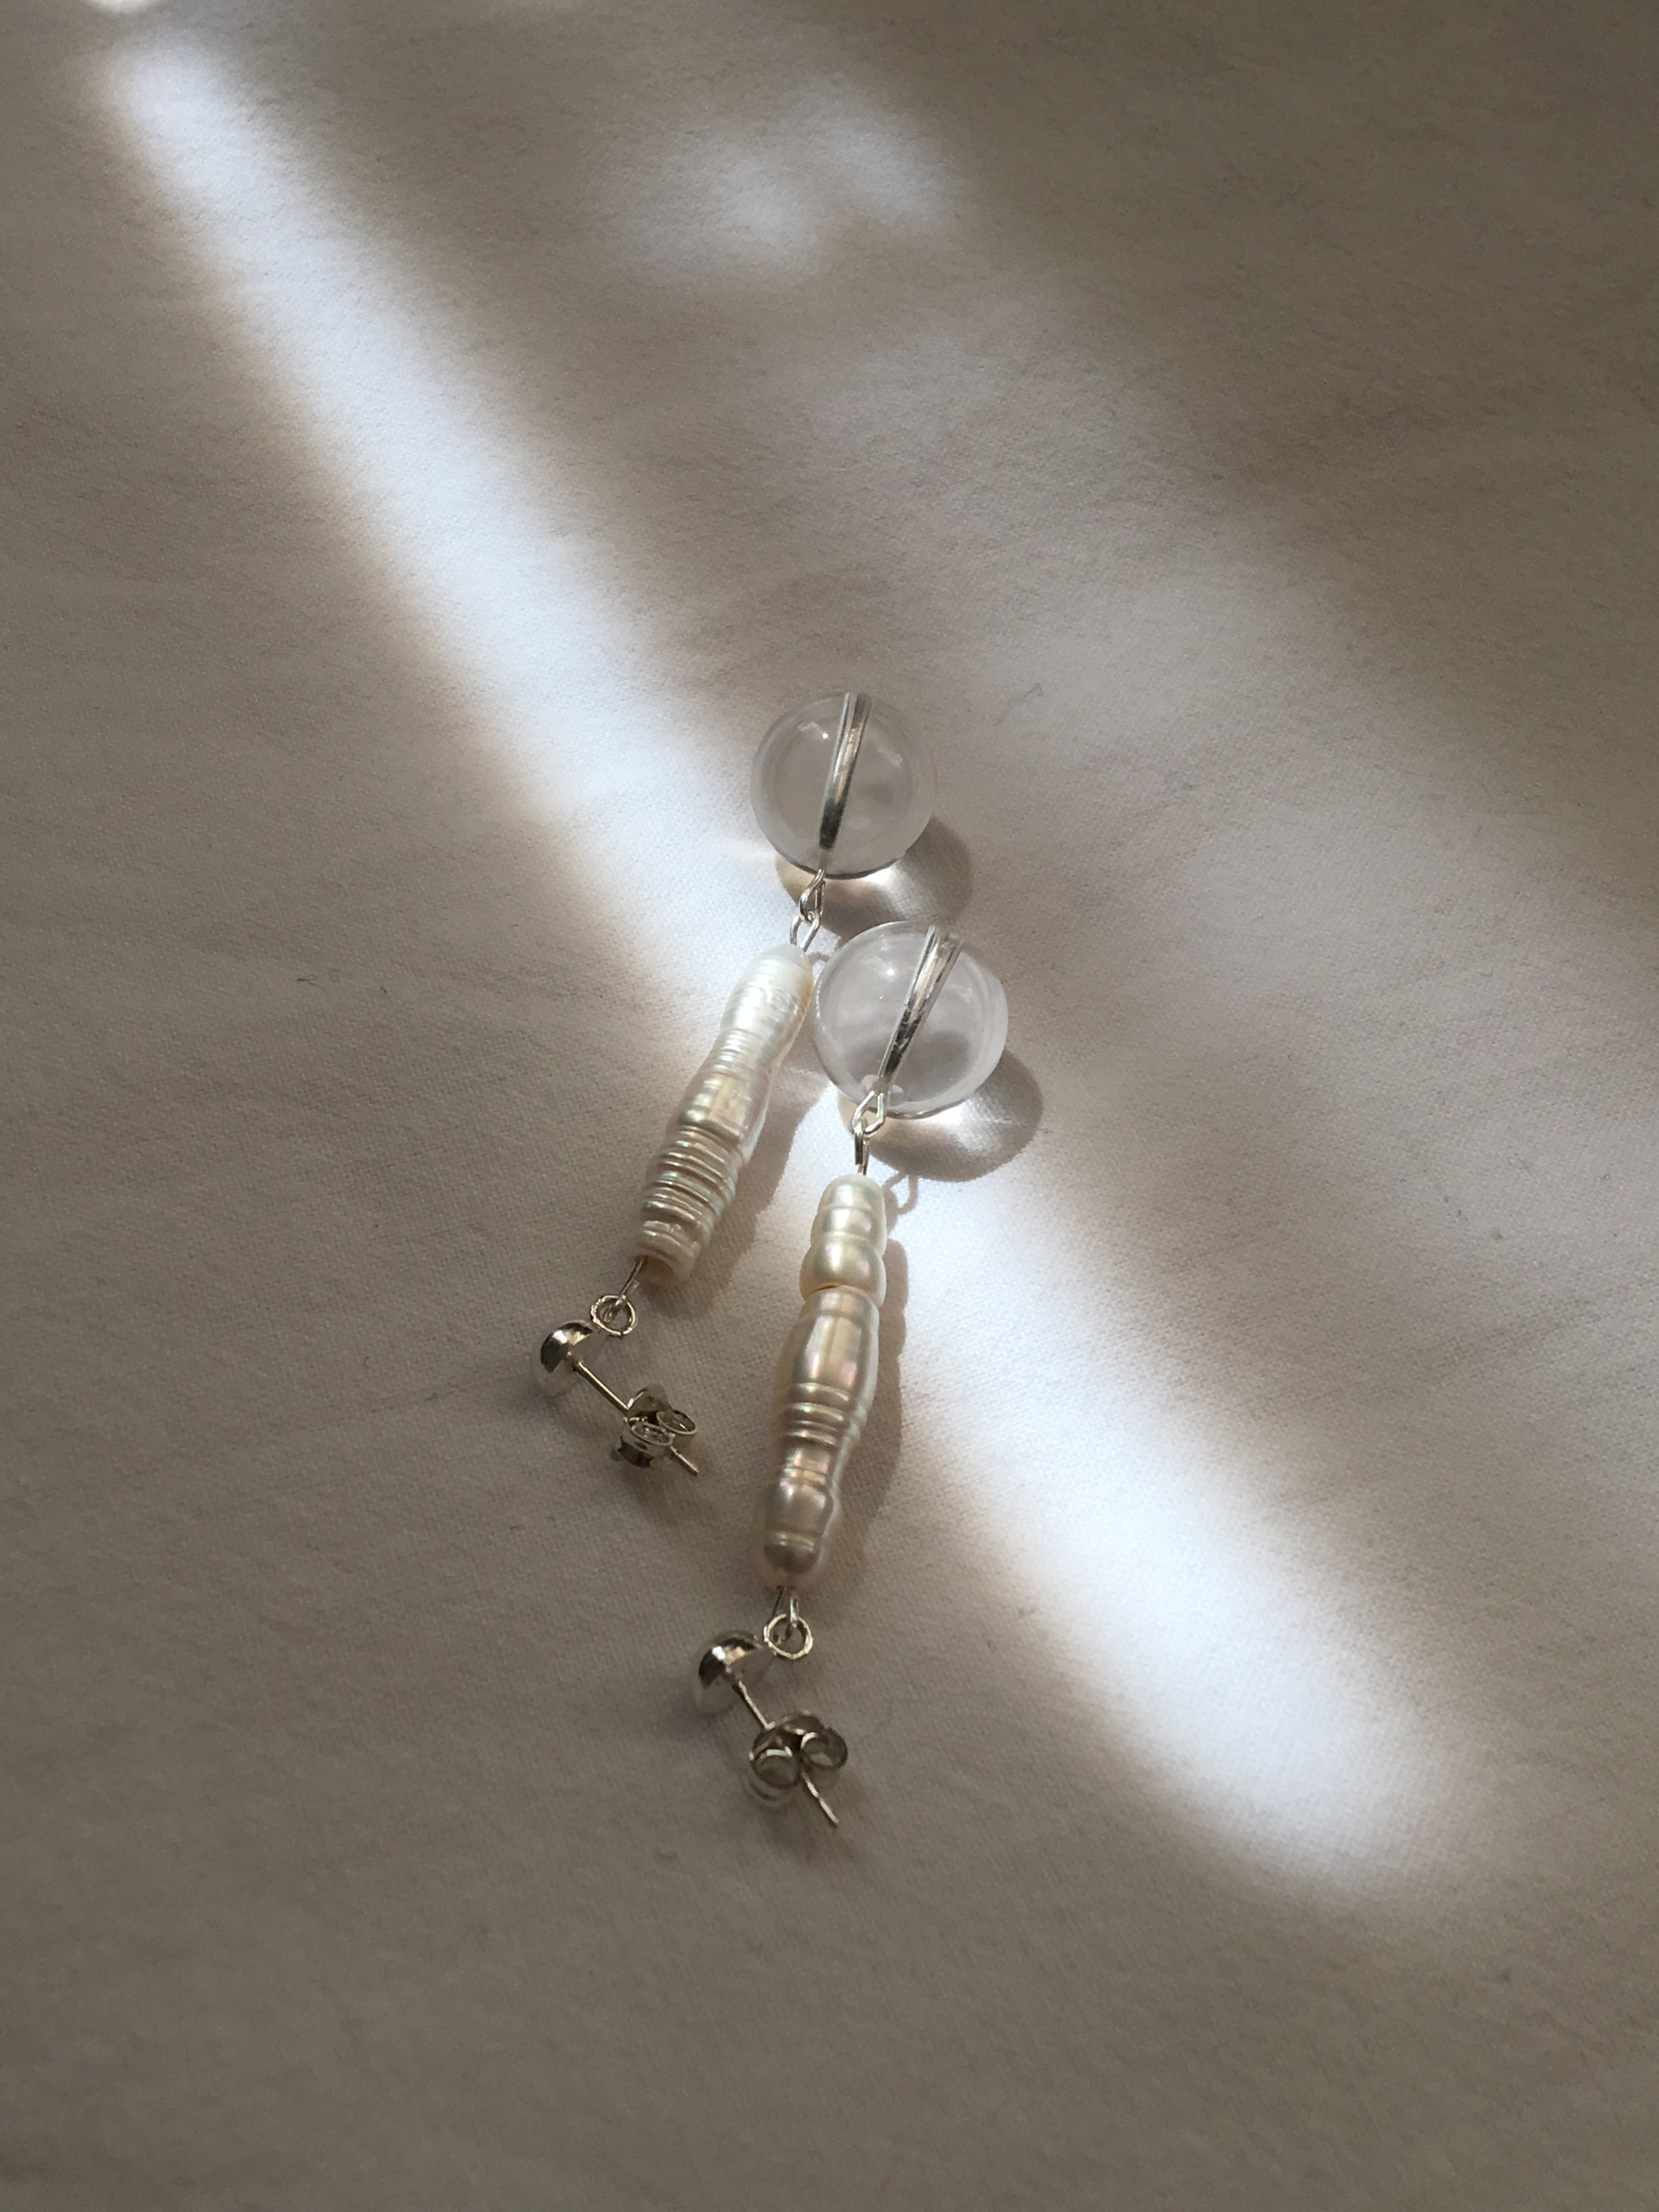 Handmade earrings with 925 sterling silver, freshwater pearls and crystal quartz